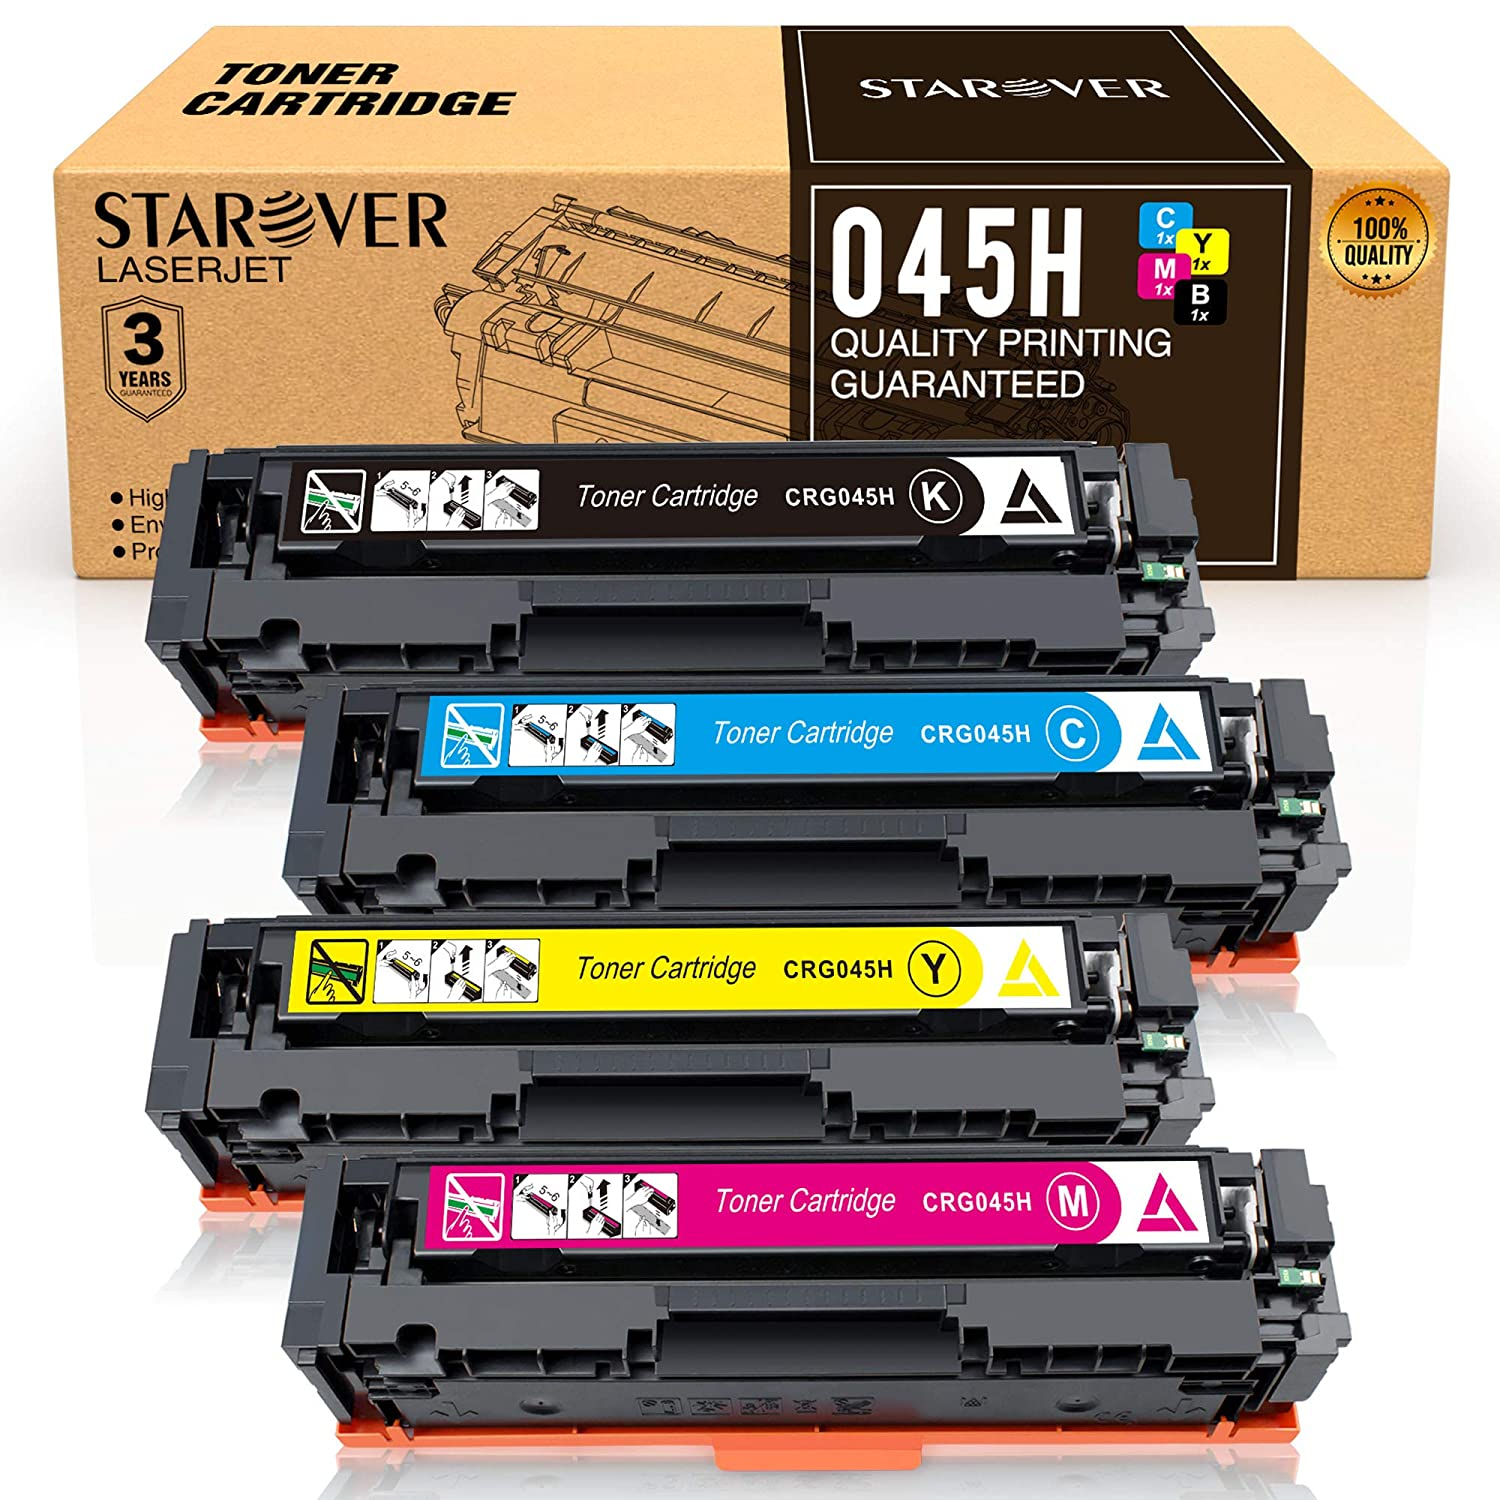 STAROVER Compatible Toner Cartridges Replacement for Canon 045 045H 4 Pack CRG-045H for Canon Color imageCLASS MF634Cdw MF632Cdw LBP612Cdw LBP613Cdw LBP611Cn Laser Printer